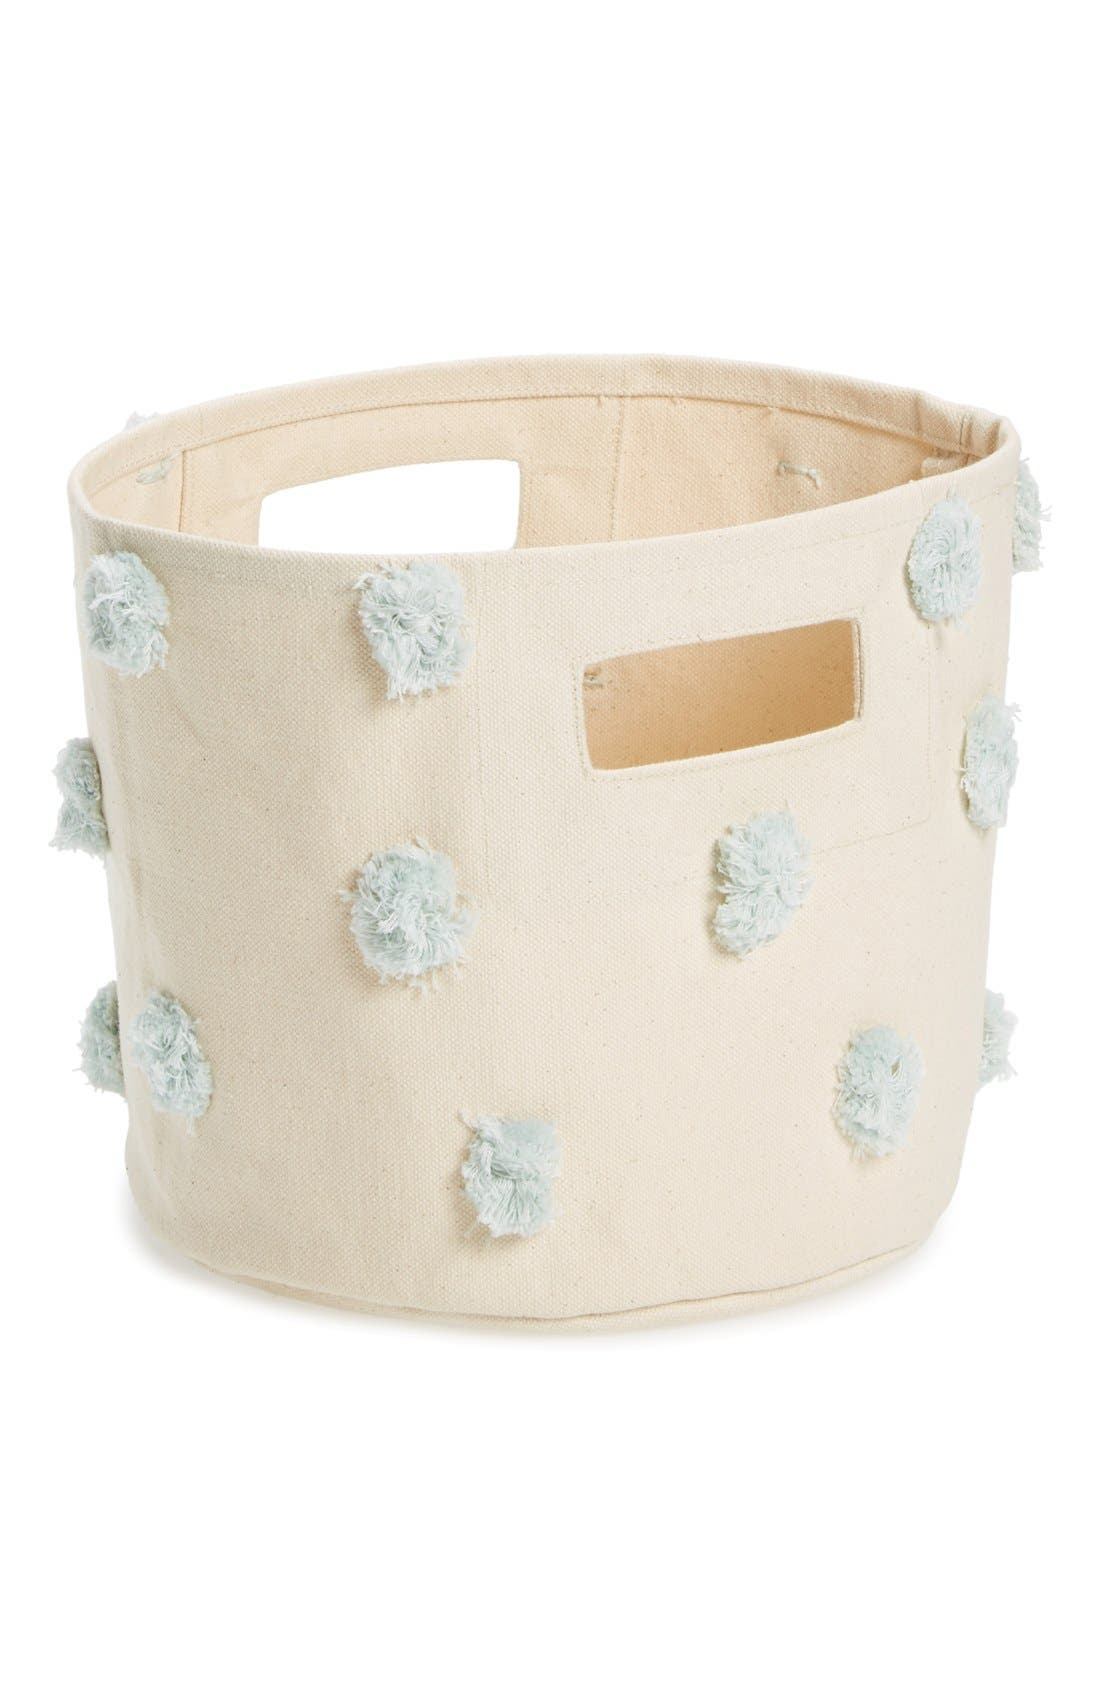 Mini Pompom Canvas Bin,                         Main,                         color, Mist Blue